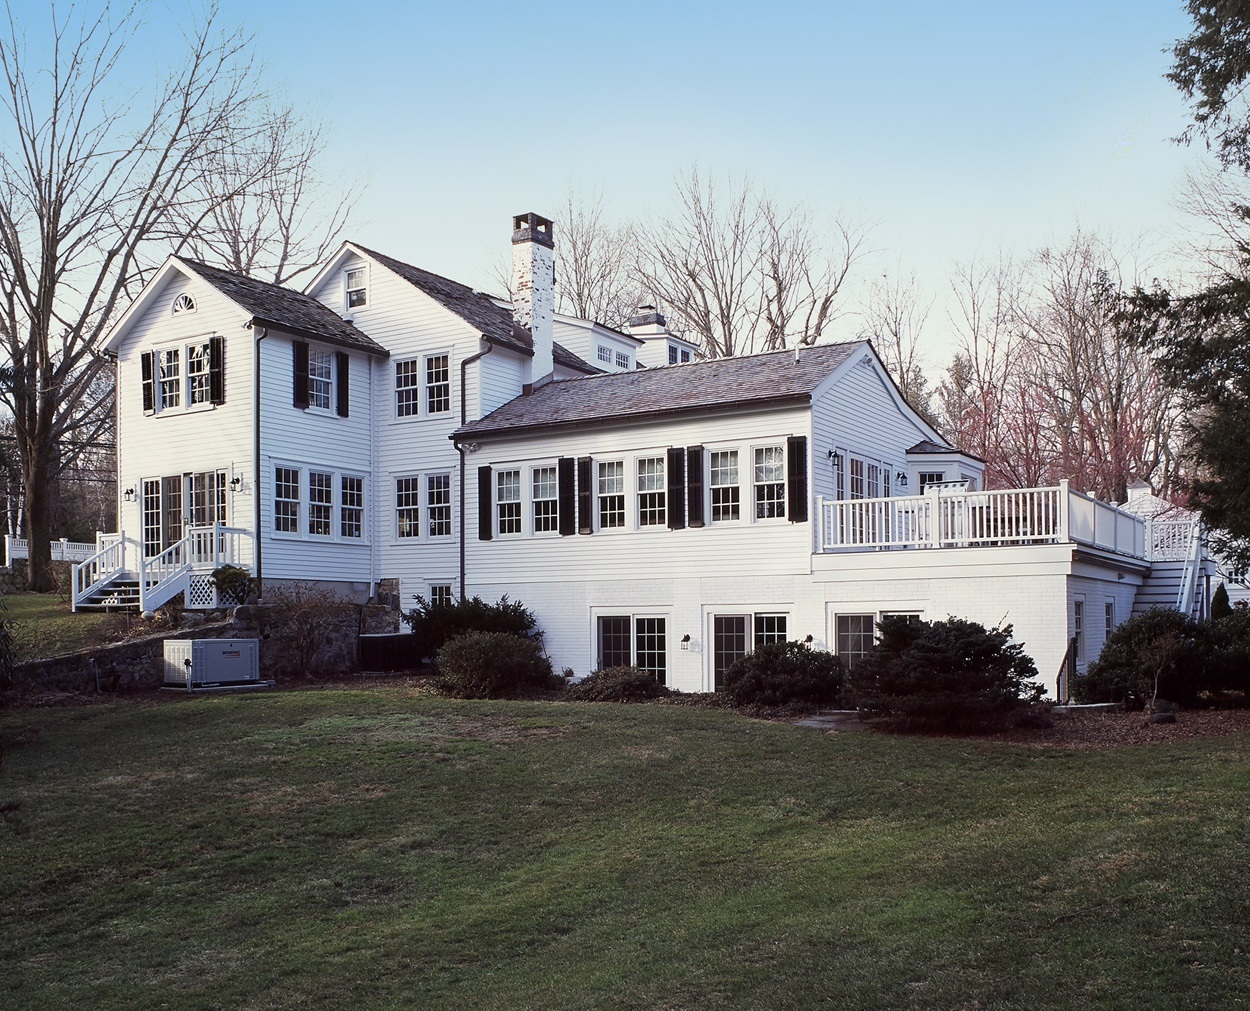 New Canaan 1850s home has indoor pool filled in and converted to living space.